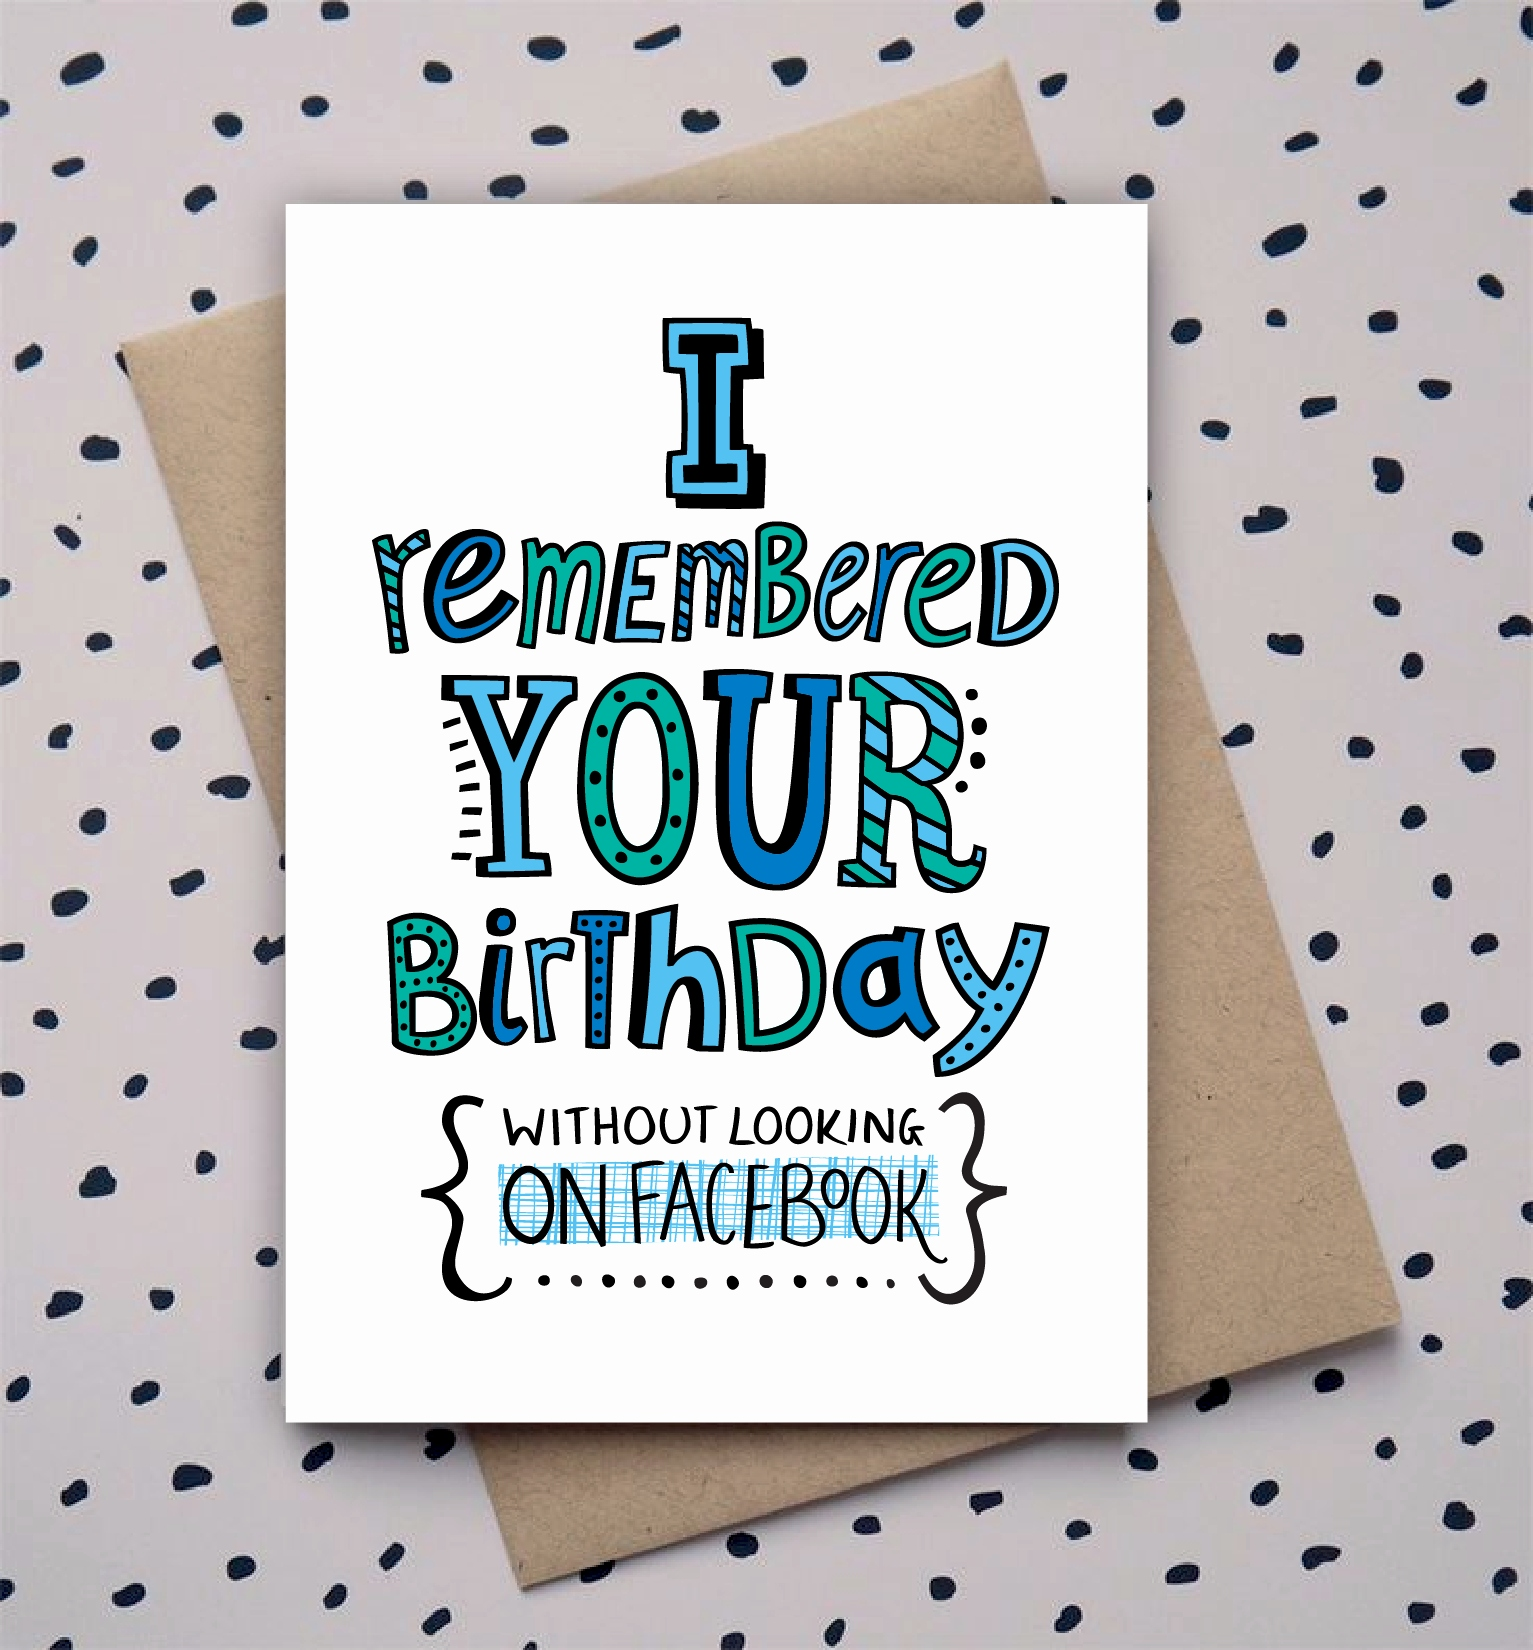 classy birthday card ideas ; homemade-birthday-card-ideas-for-dad-from-son-unique-colors-birthday-card-ideas-cupcake-plus-birthday-card-ideas-diy-of-homemade-birthday-card-ideas-for-dad-from-son